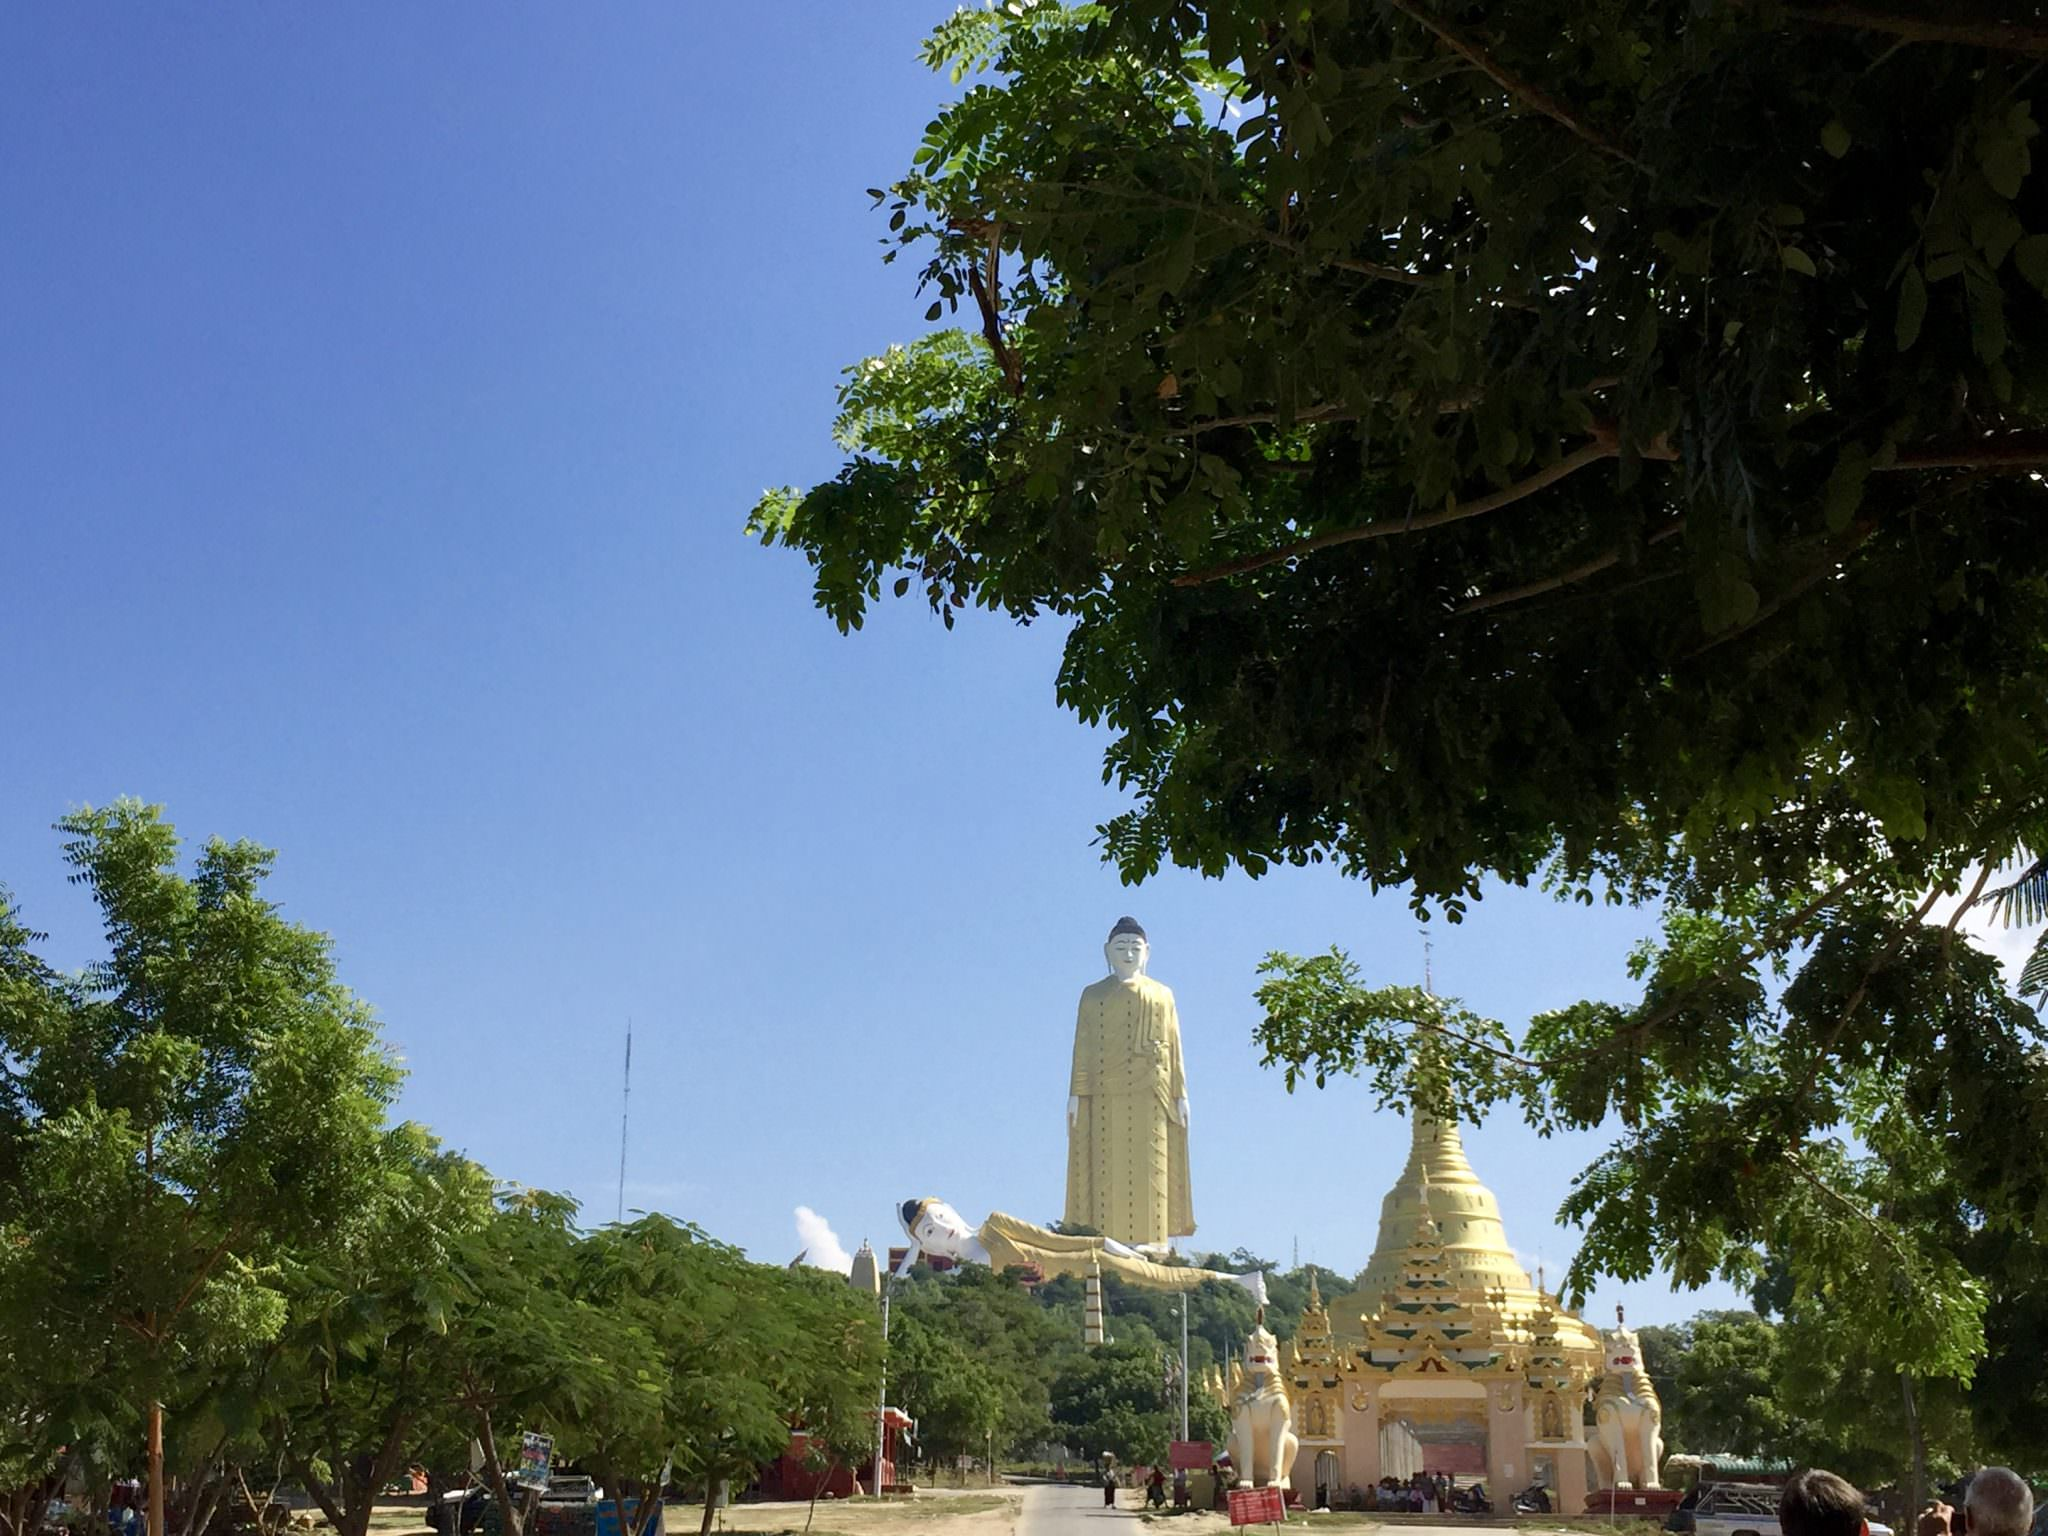 The Monywa buddhas, currently the largest Buddha statues in the world. © 2015 Gail Jessen